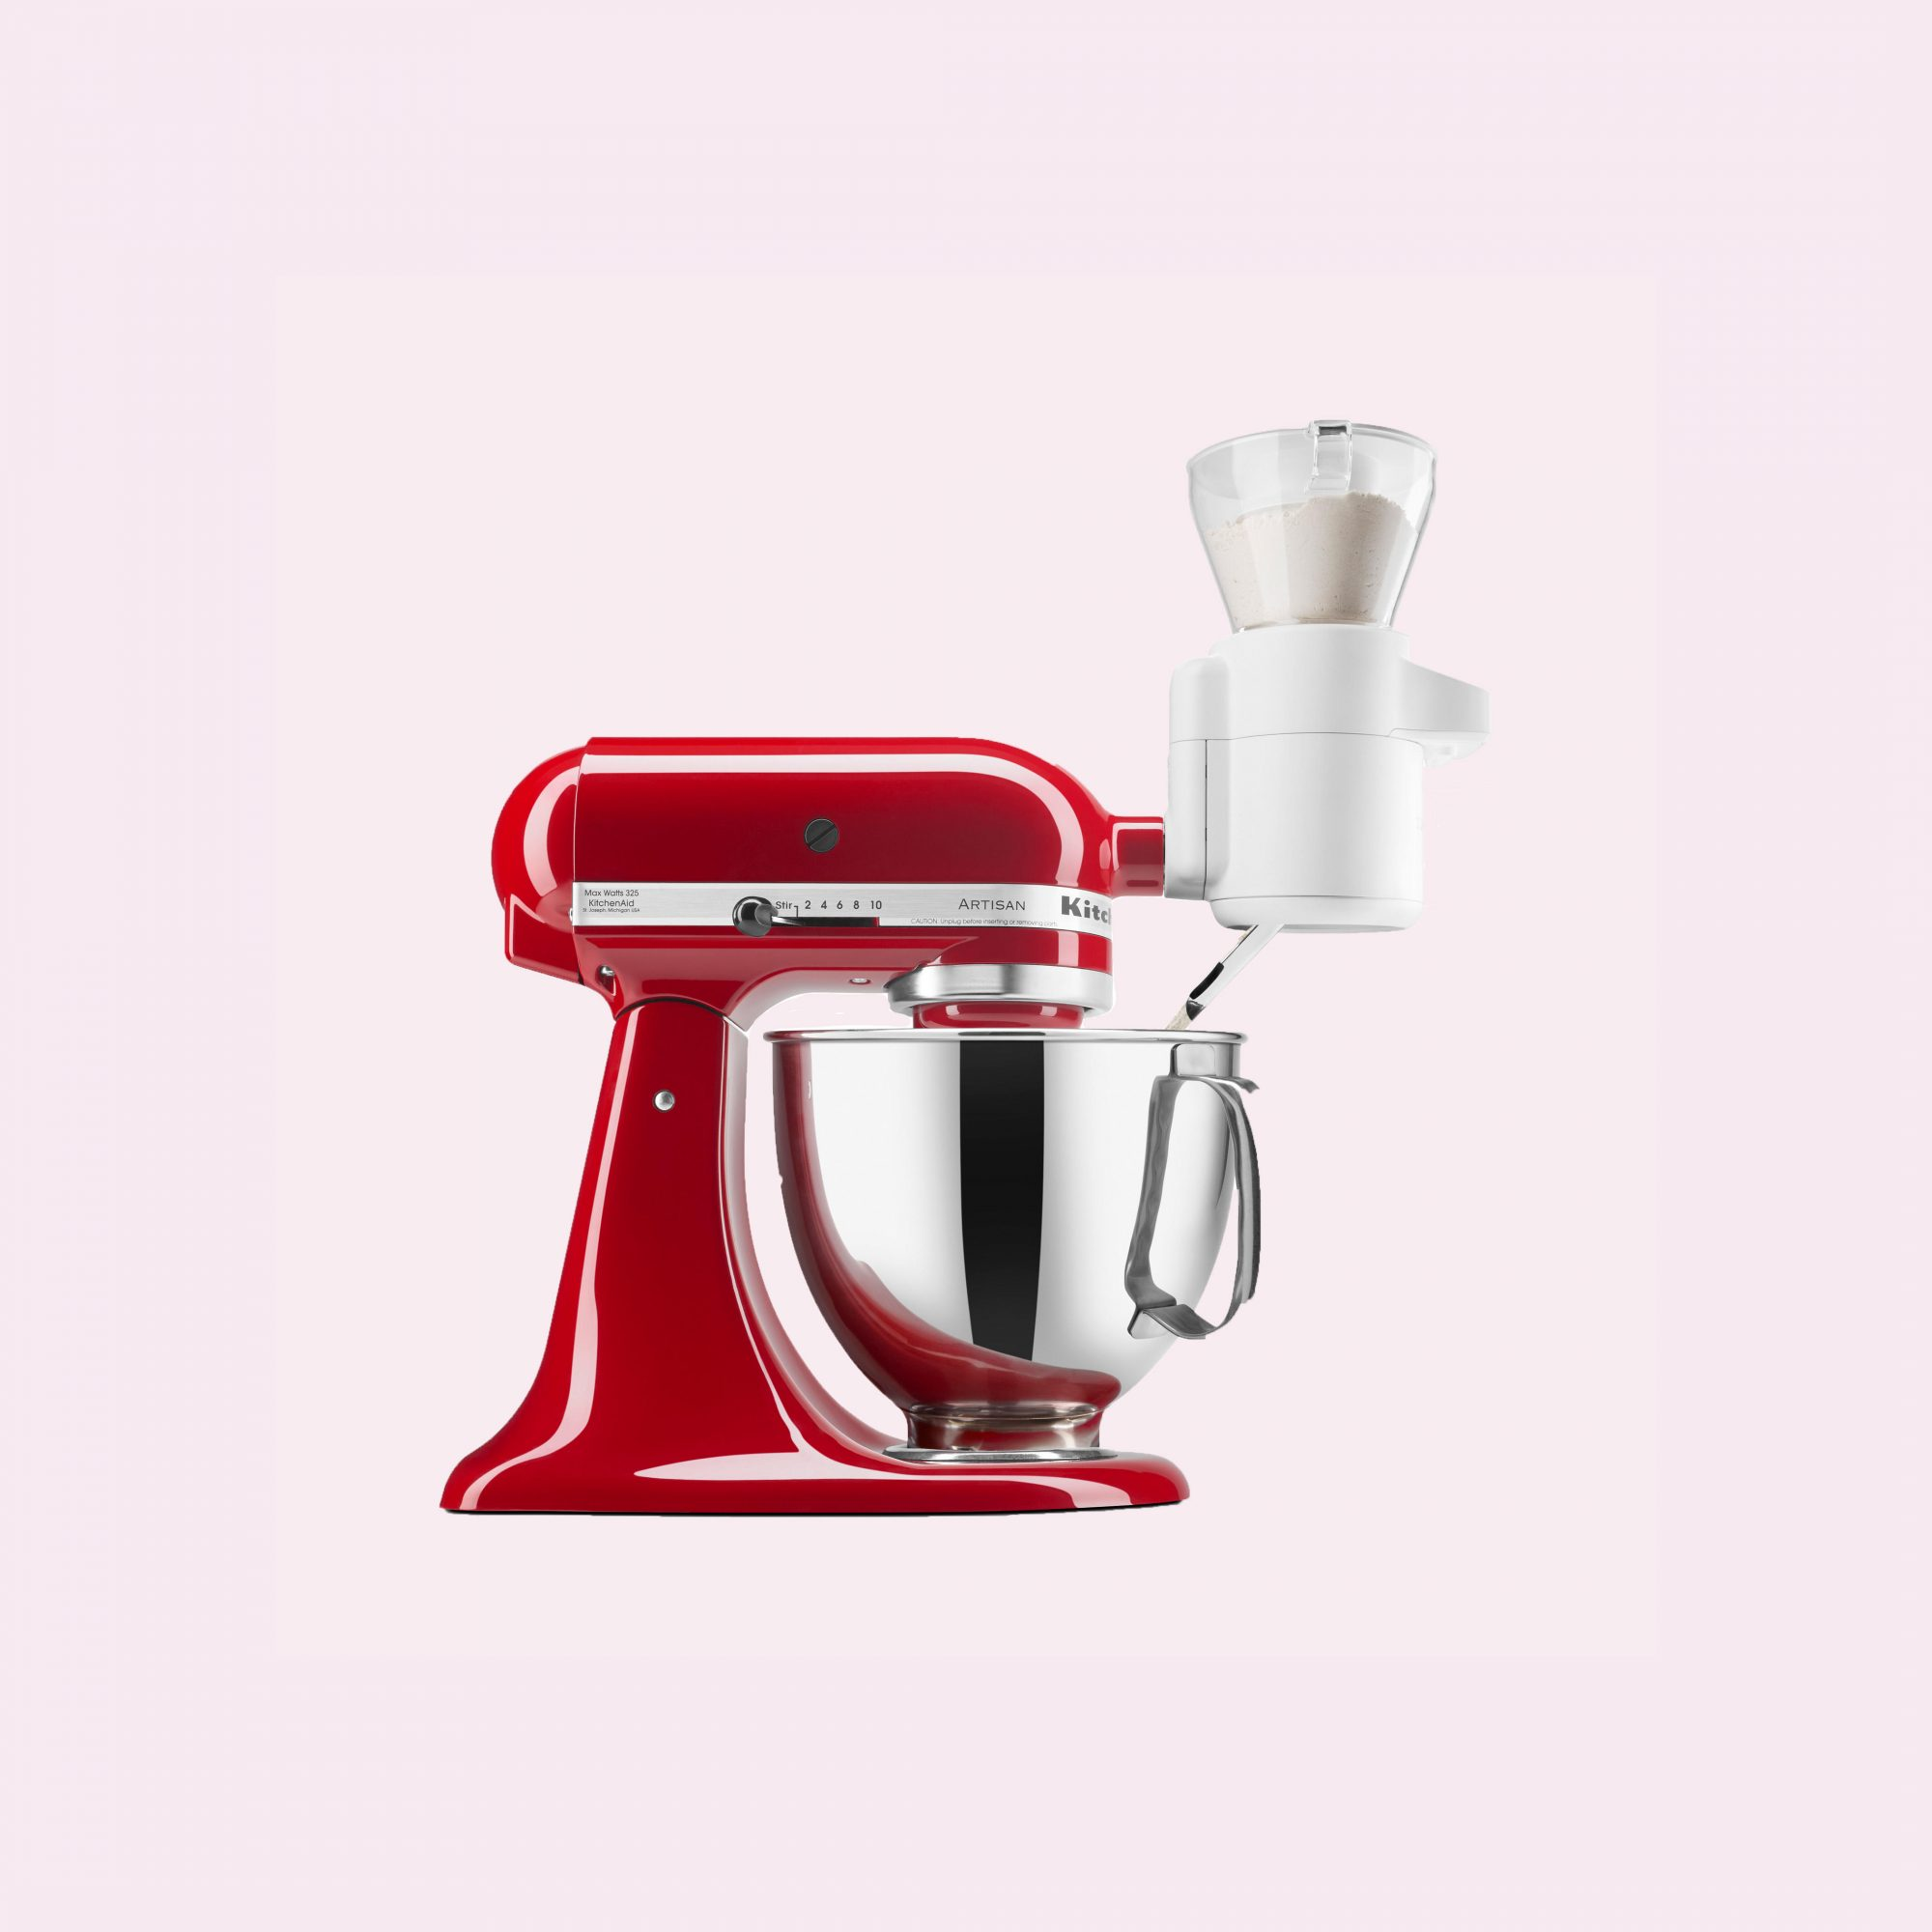 15 KitchenAid Mixer Attachments You Should Add to Your Wishlist